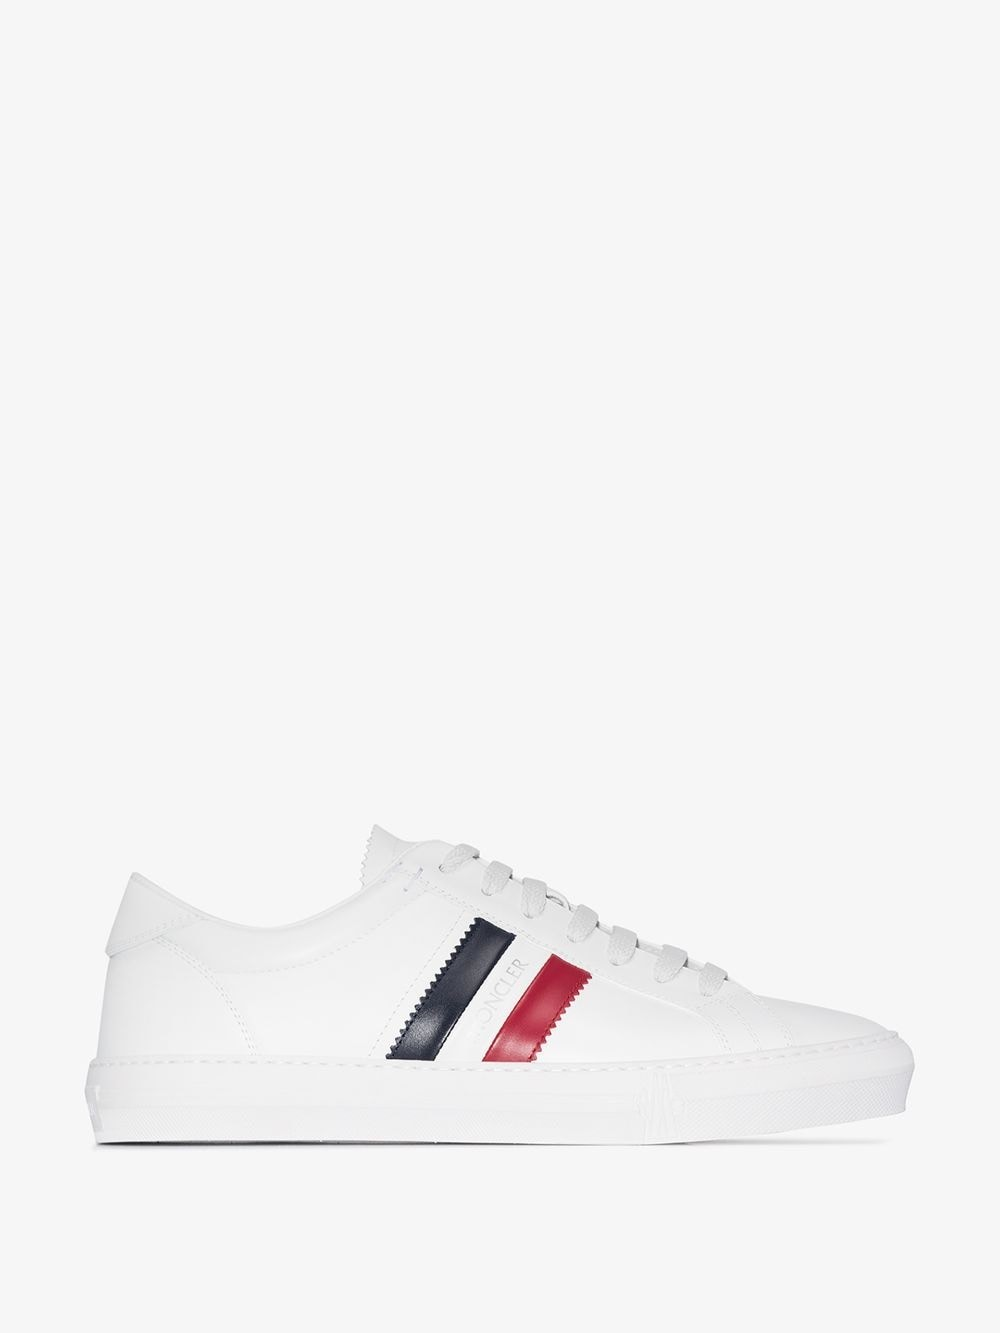 moncler NEW MONACO SNEAKERS available